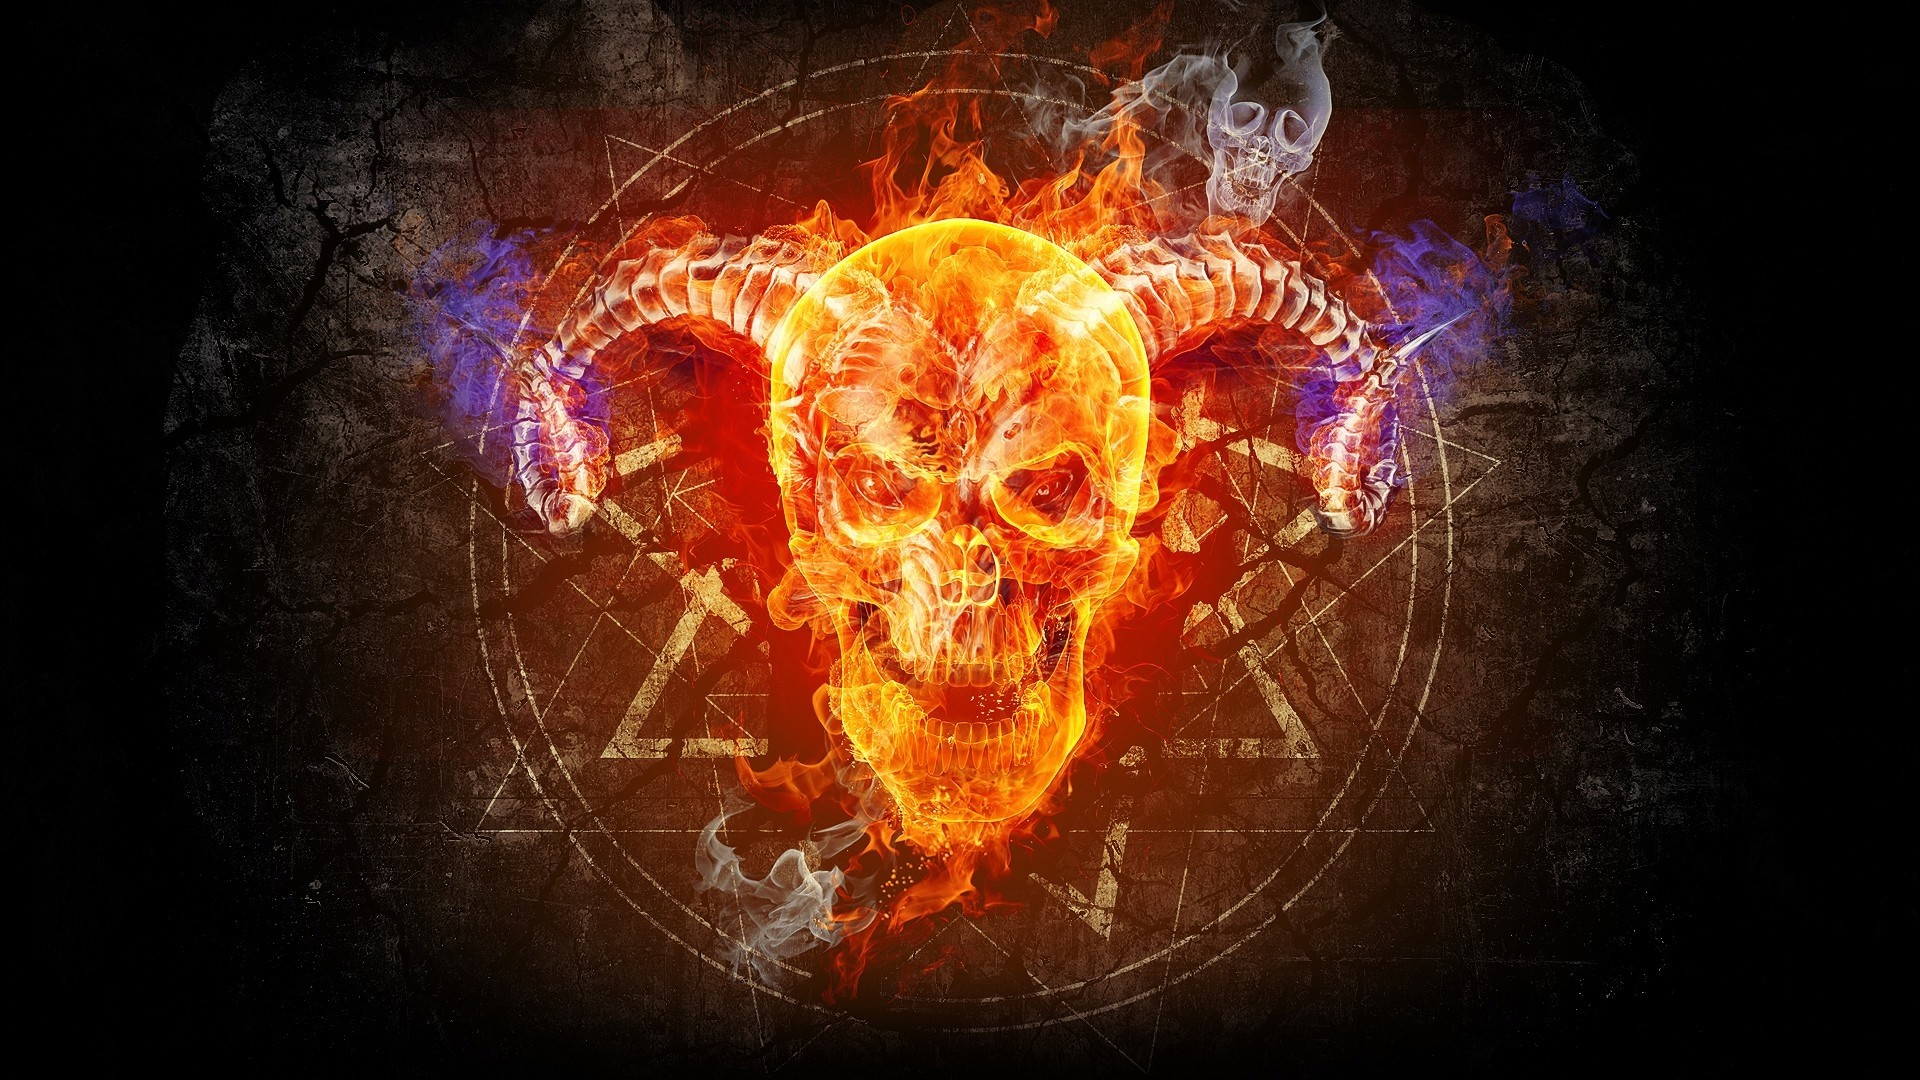 Res: 1920x1080, Skull Fire Wallpapers - Resolution: , Kelsey Mahlum